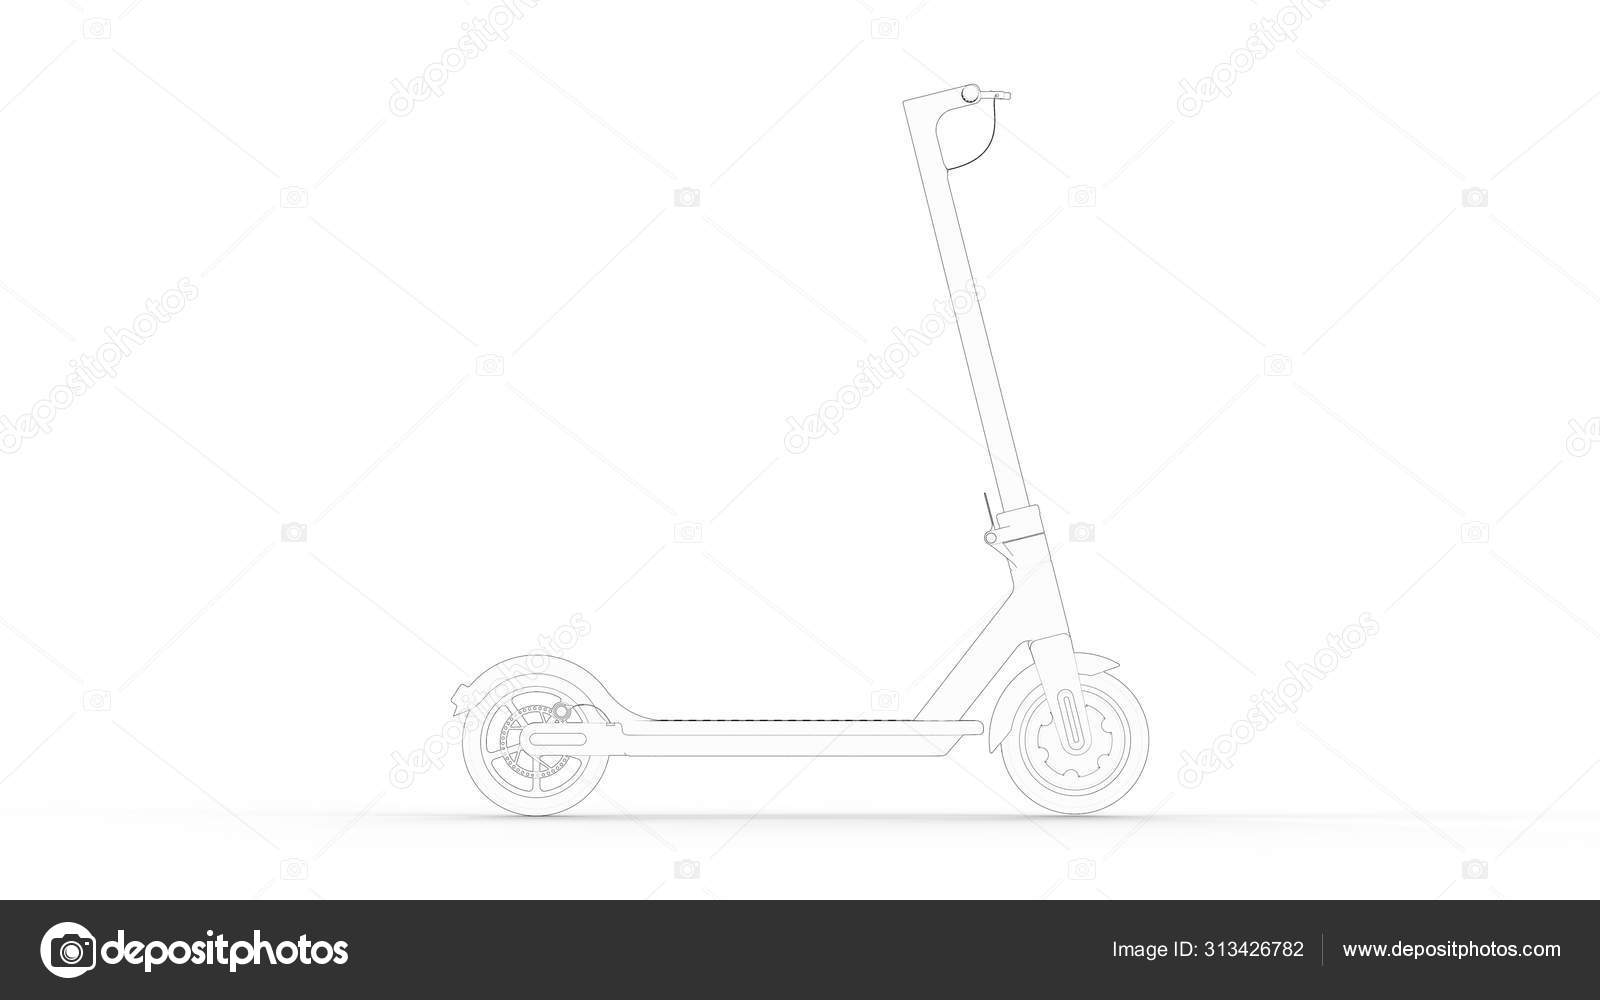 3d Rendering Multiple Technical Drawing Views Of An Electric Scooter Stock Photo C Sepia100 313426782